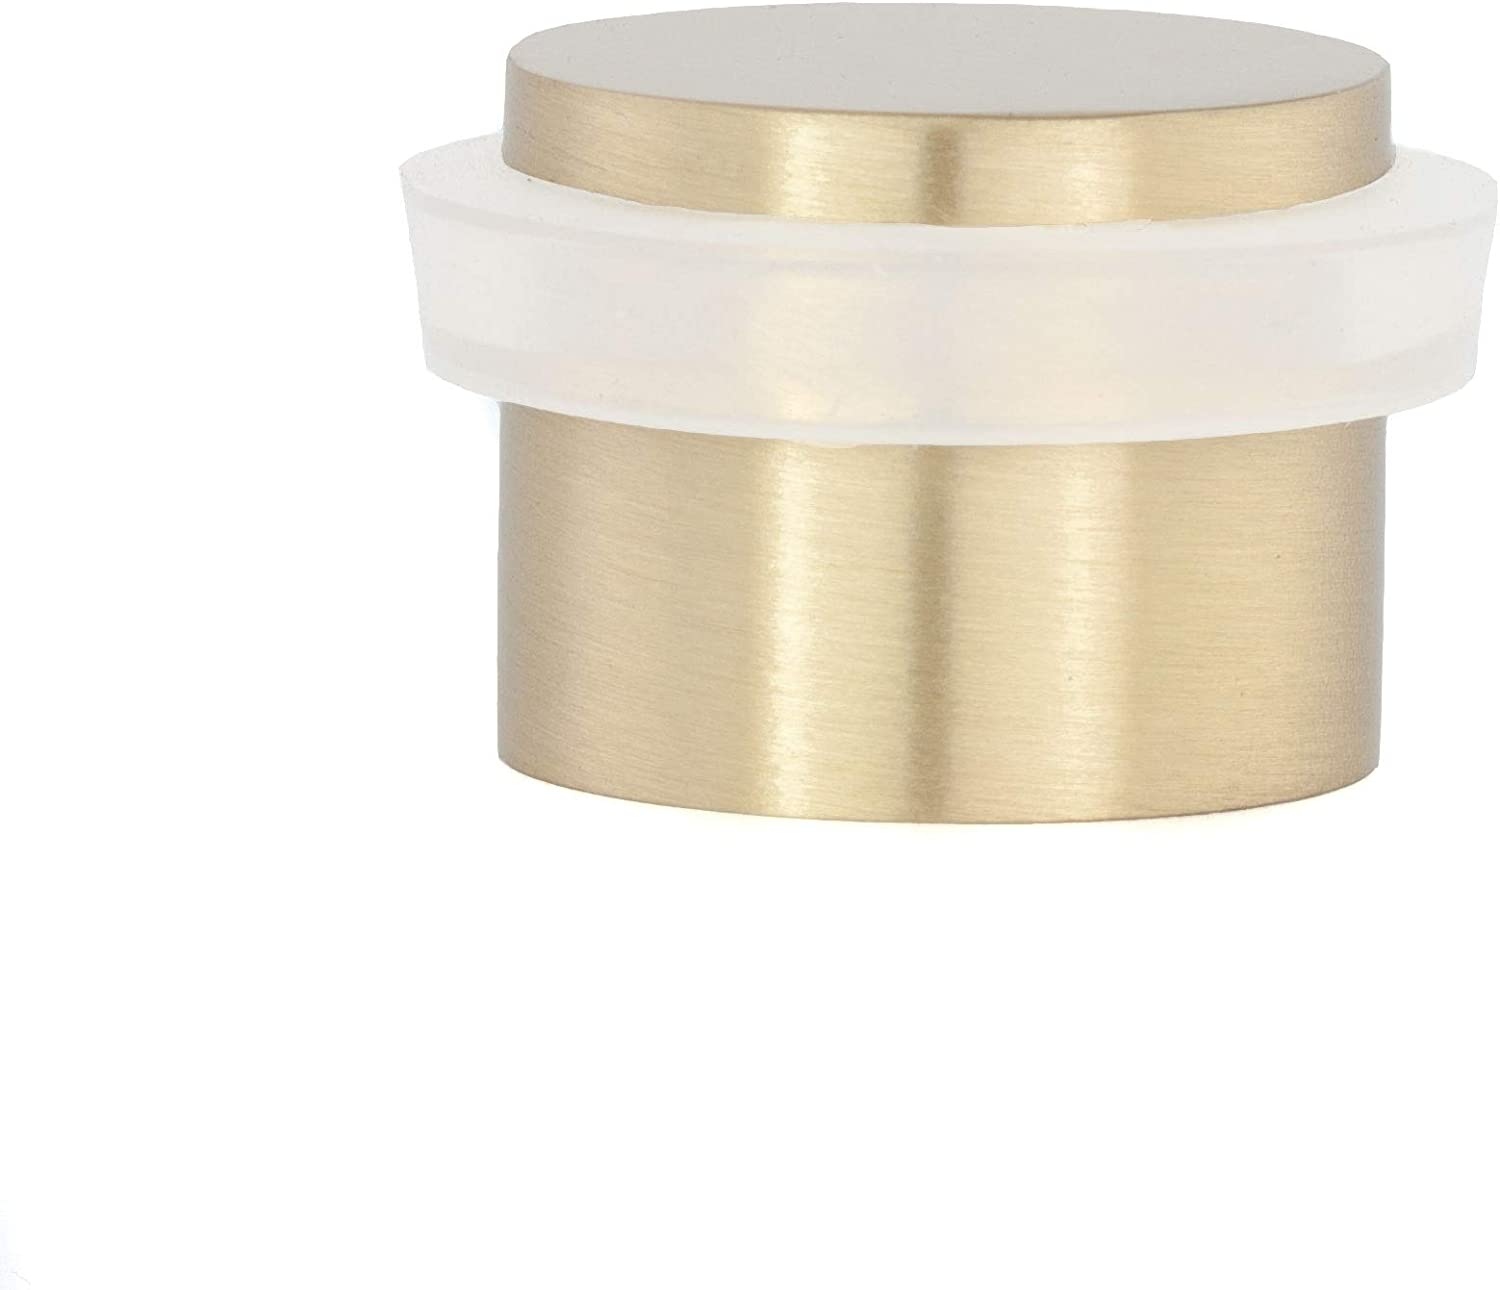 EVI Herrajes 04019124BLM I-191/24-B Adhesive Door Stop, Gold, Silent, 28x20mm, Mate Brass-Rubber White